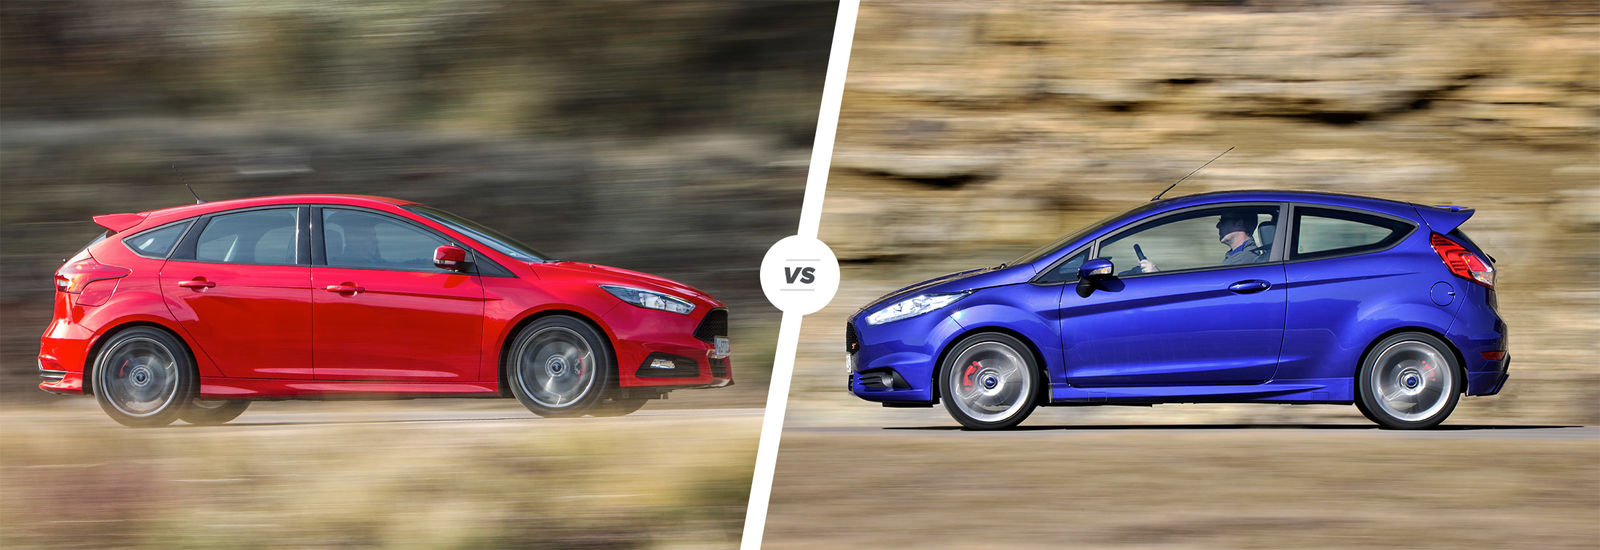 Driving & Ford Fiesta ST vs Focus ST: which is best? | carwow markmcfarlin.com